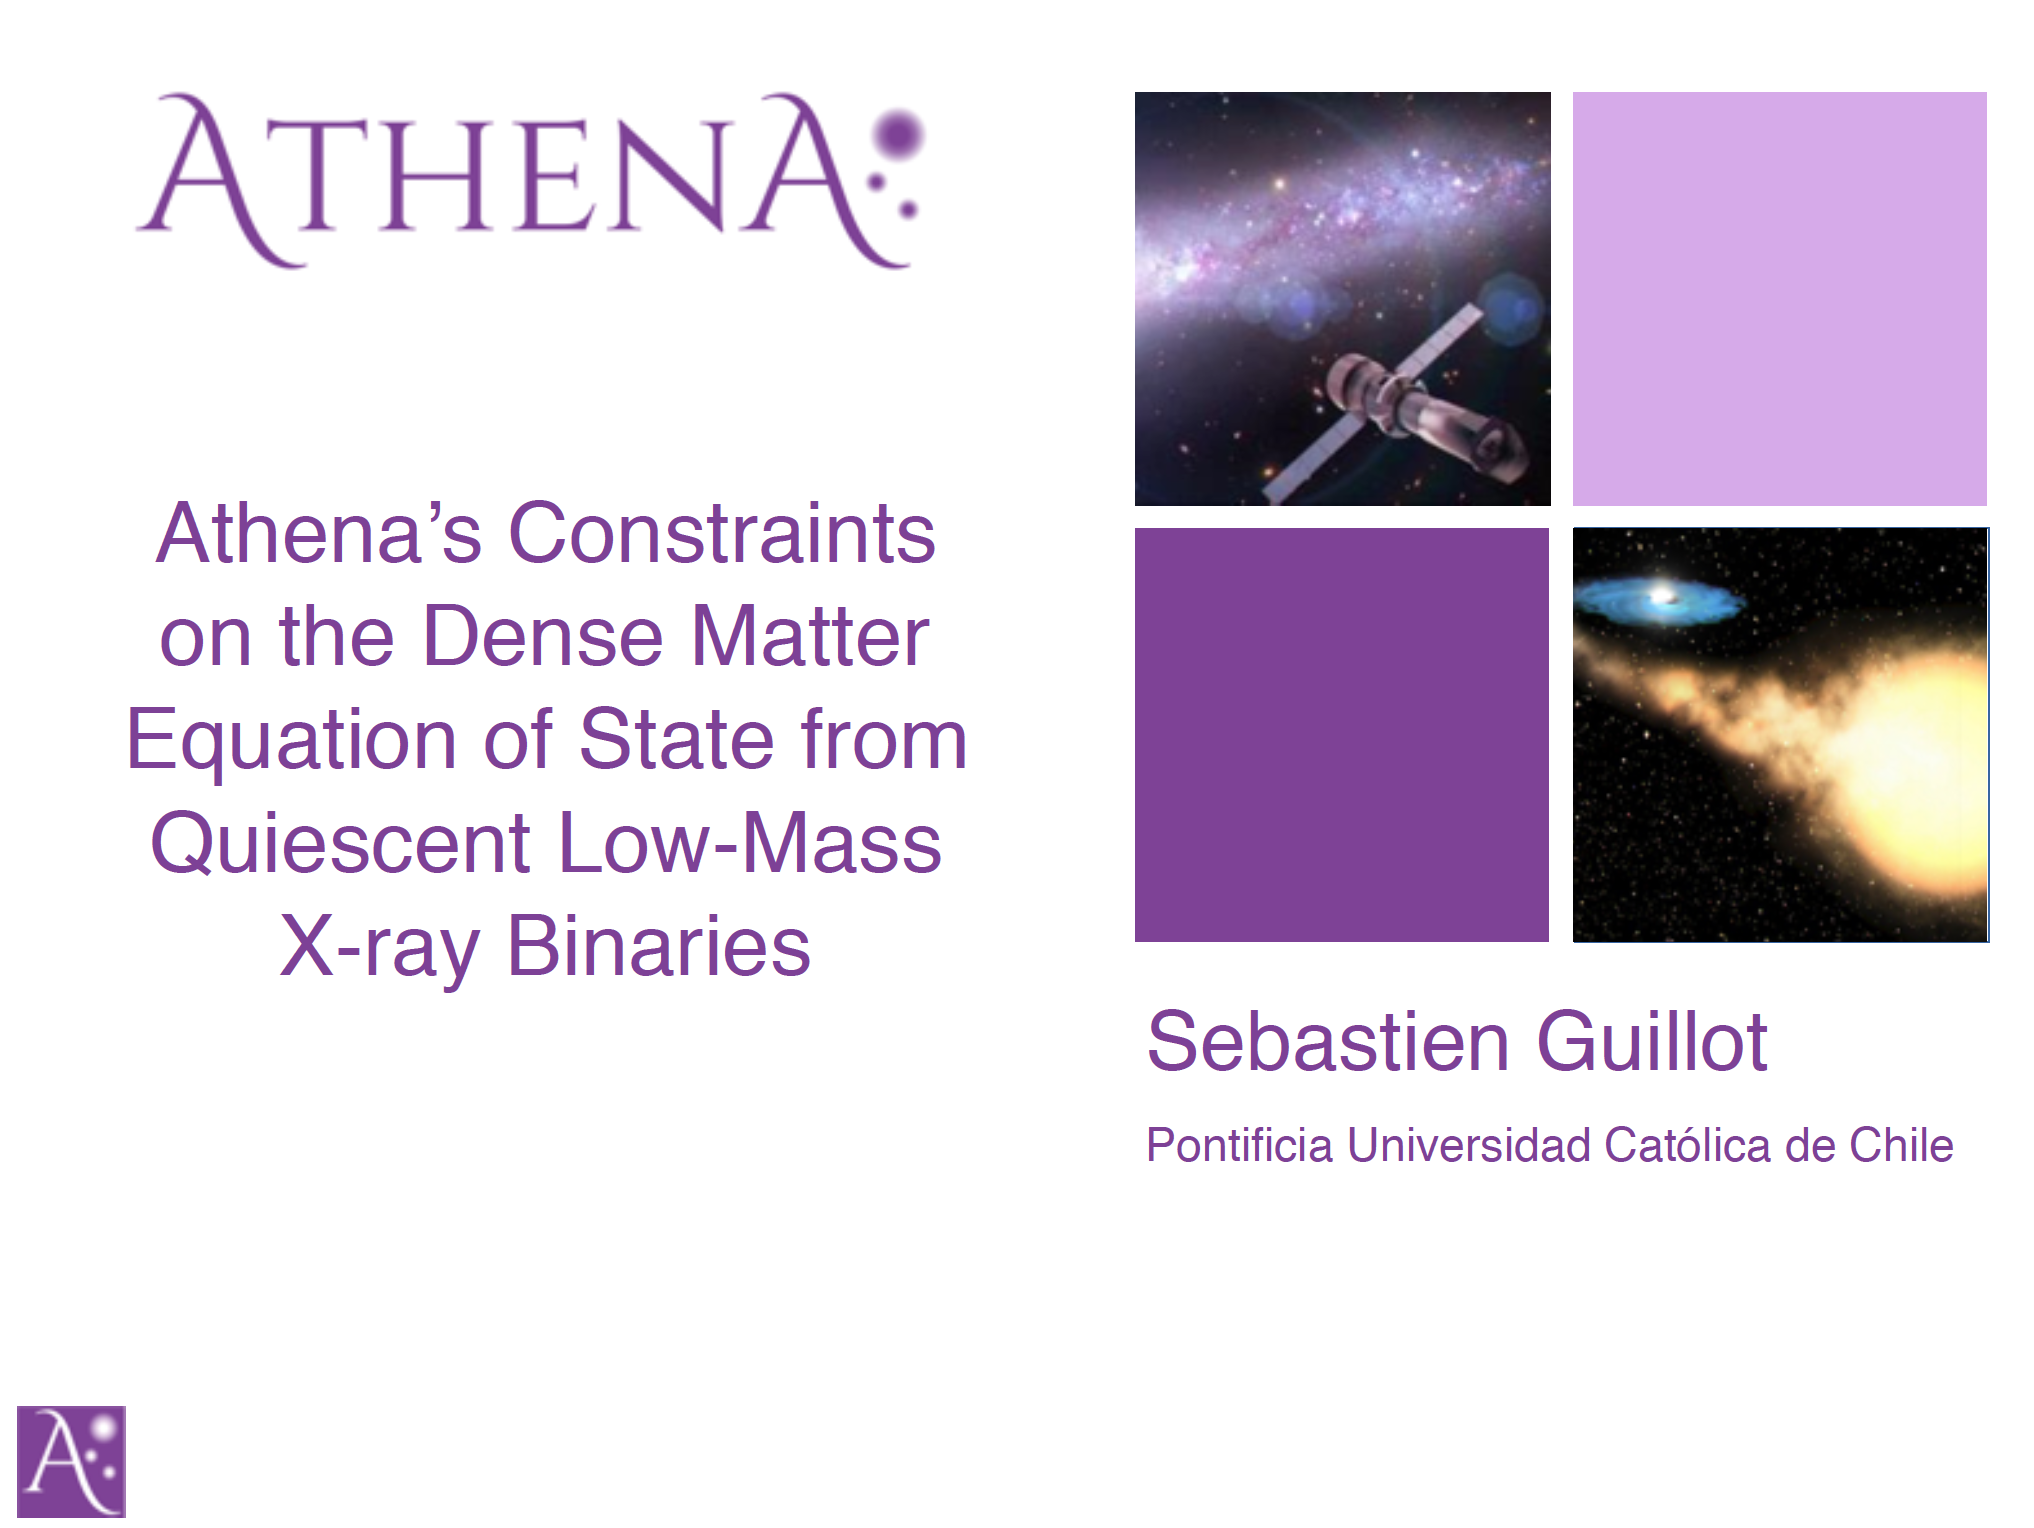 Athena's Constraints on the Dense Matter Equation of State from Quiescent Low Mass X-ray Binaries